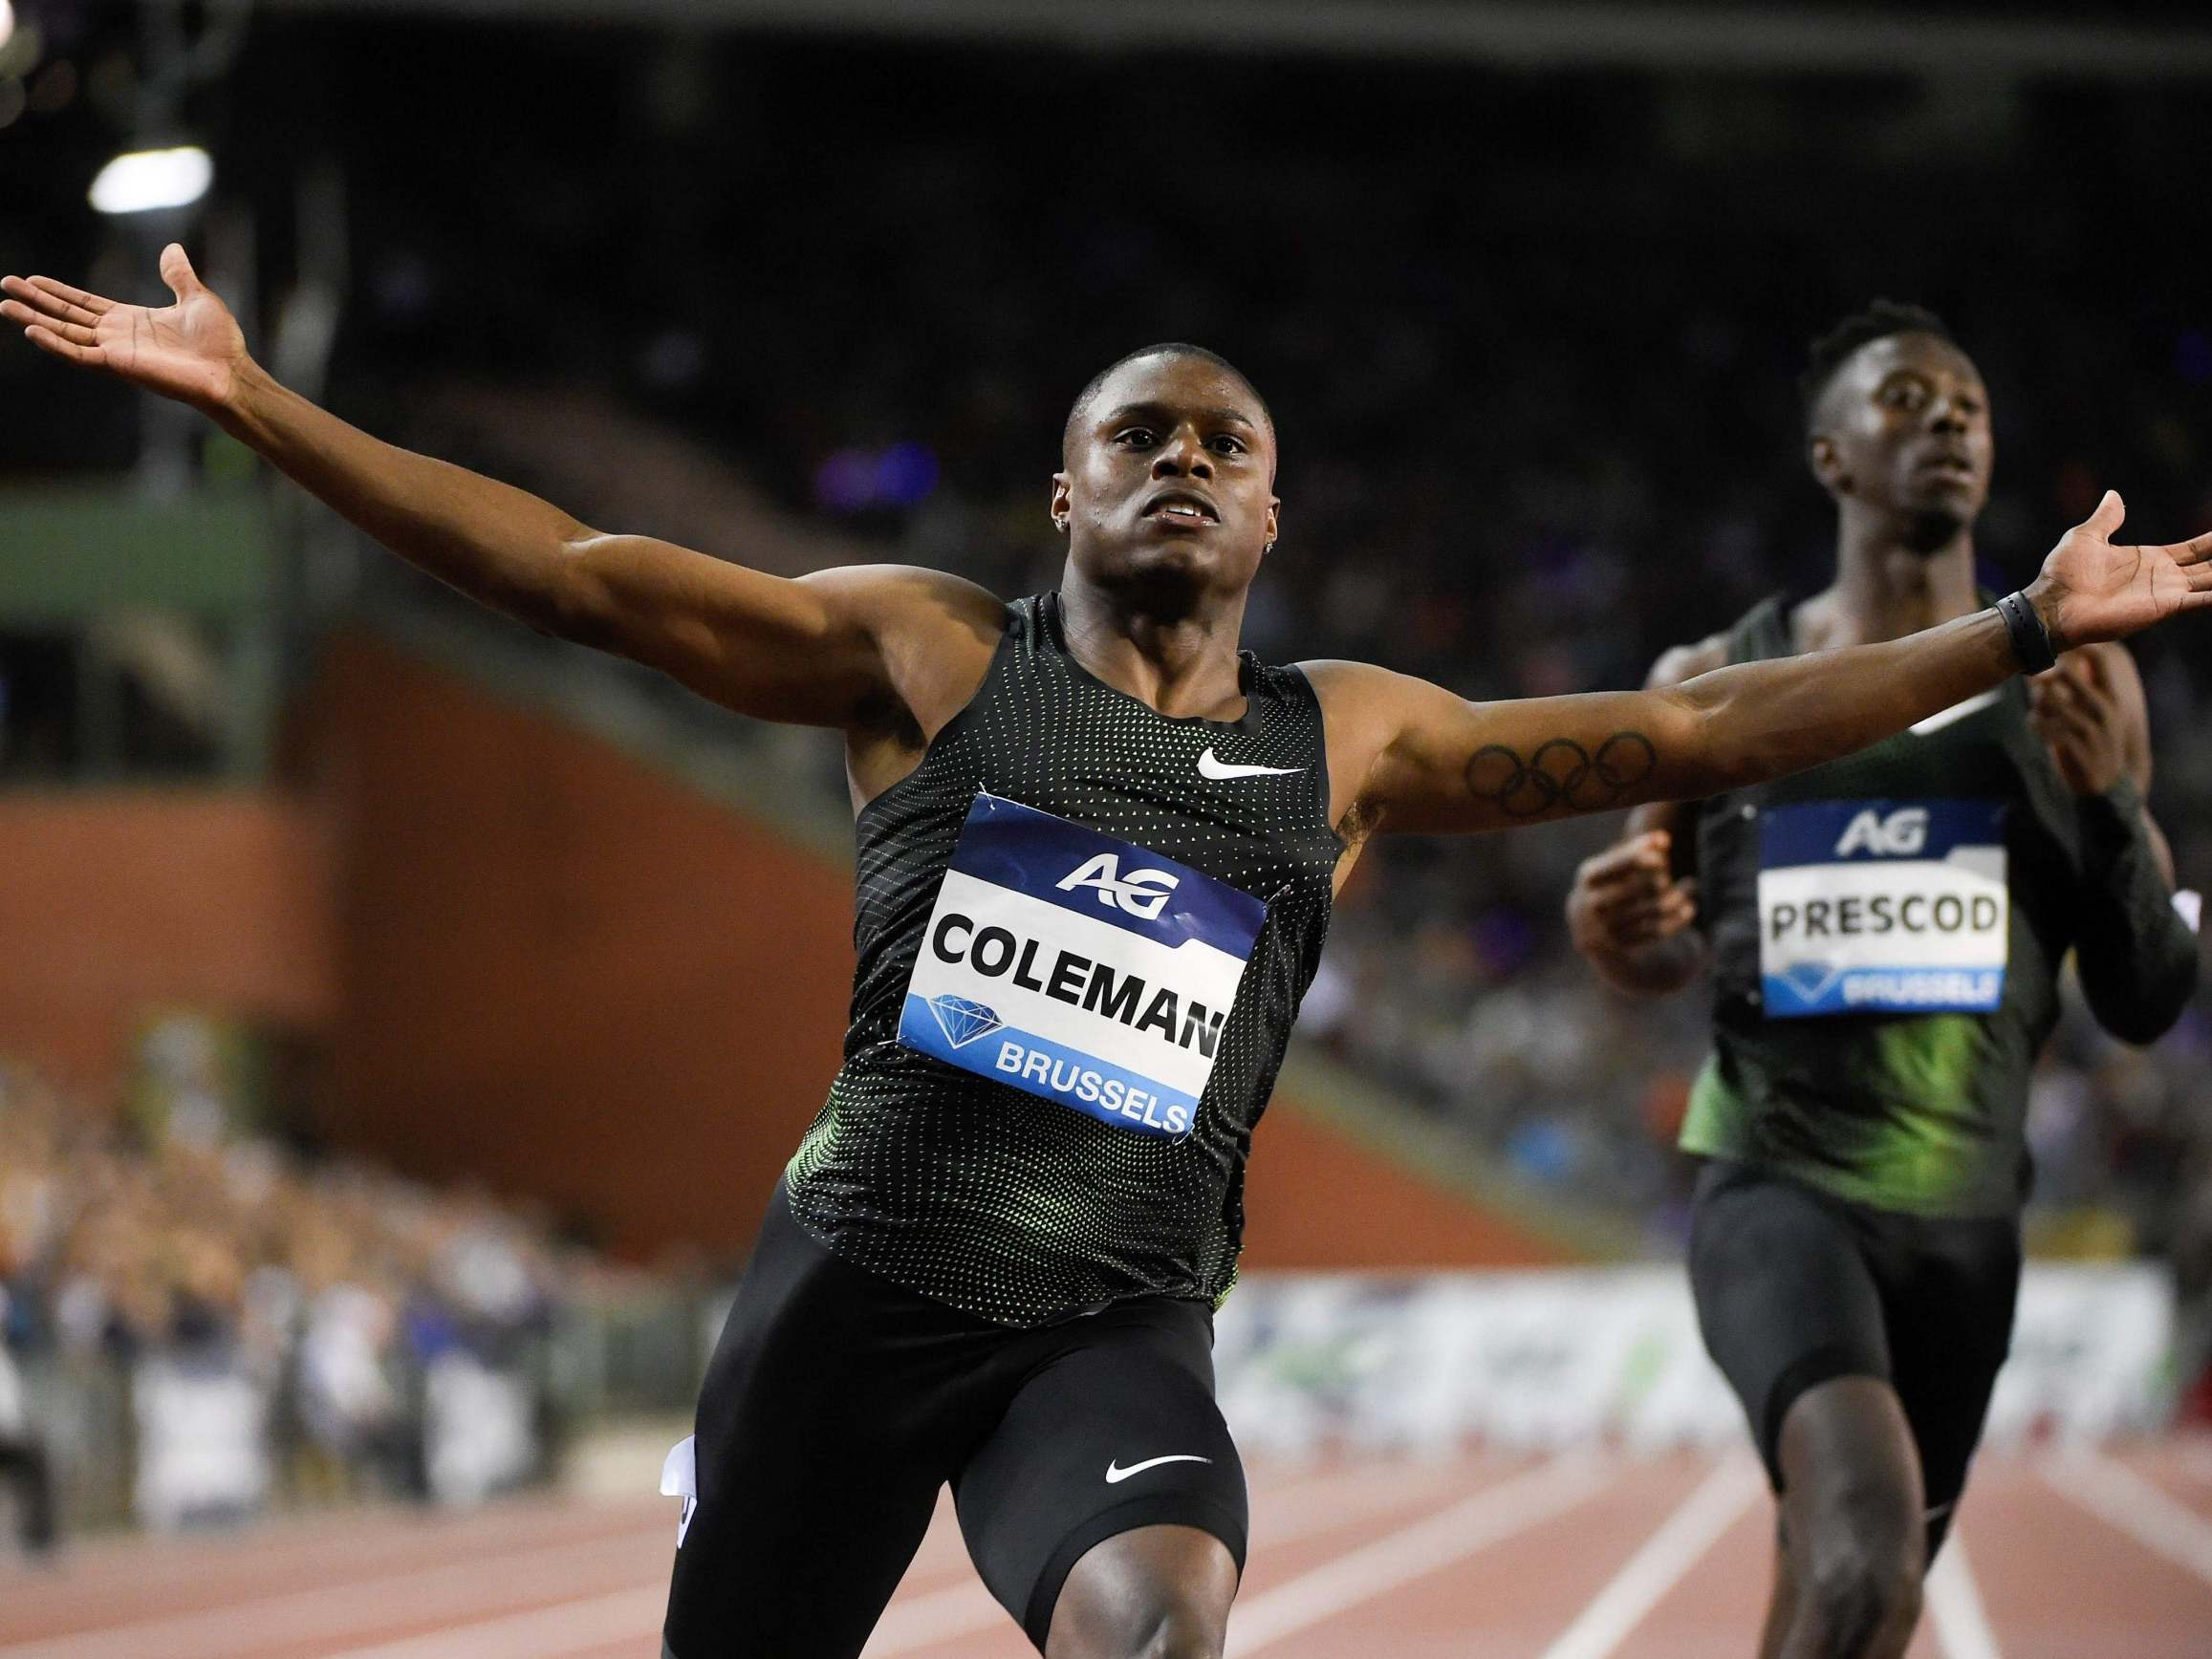 World's fastest man Christian Coleman could be banned from Olympics over 'three missed drugs tests'